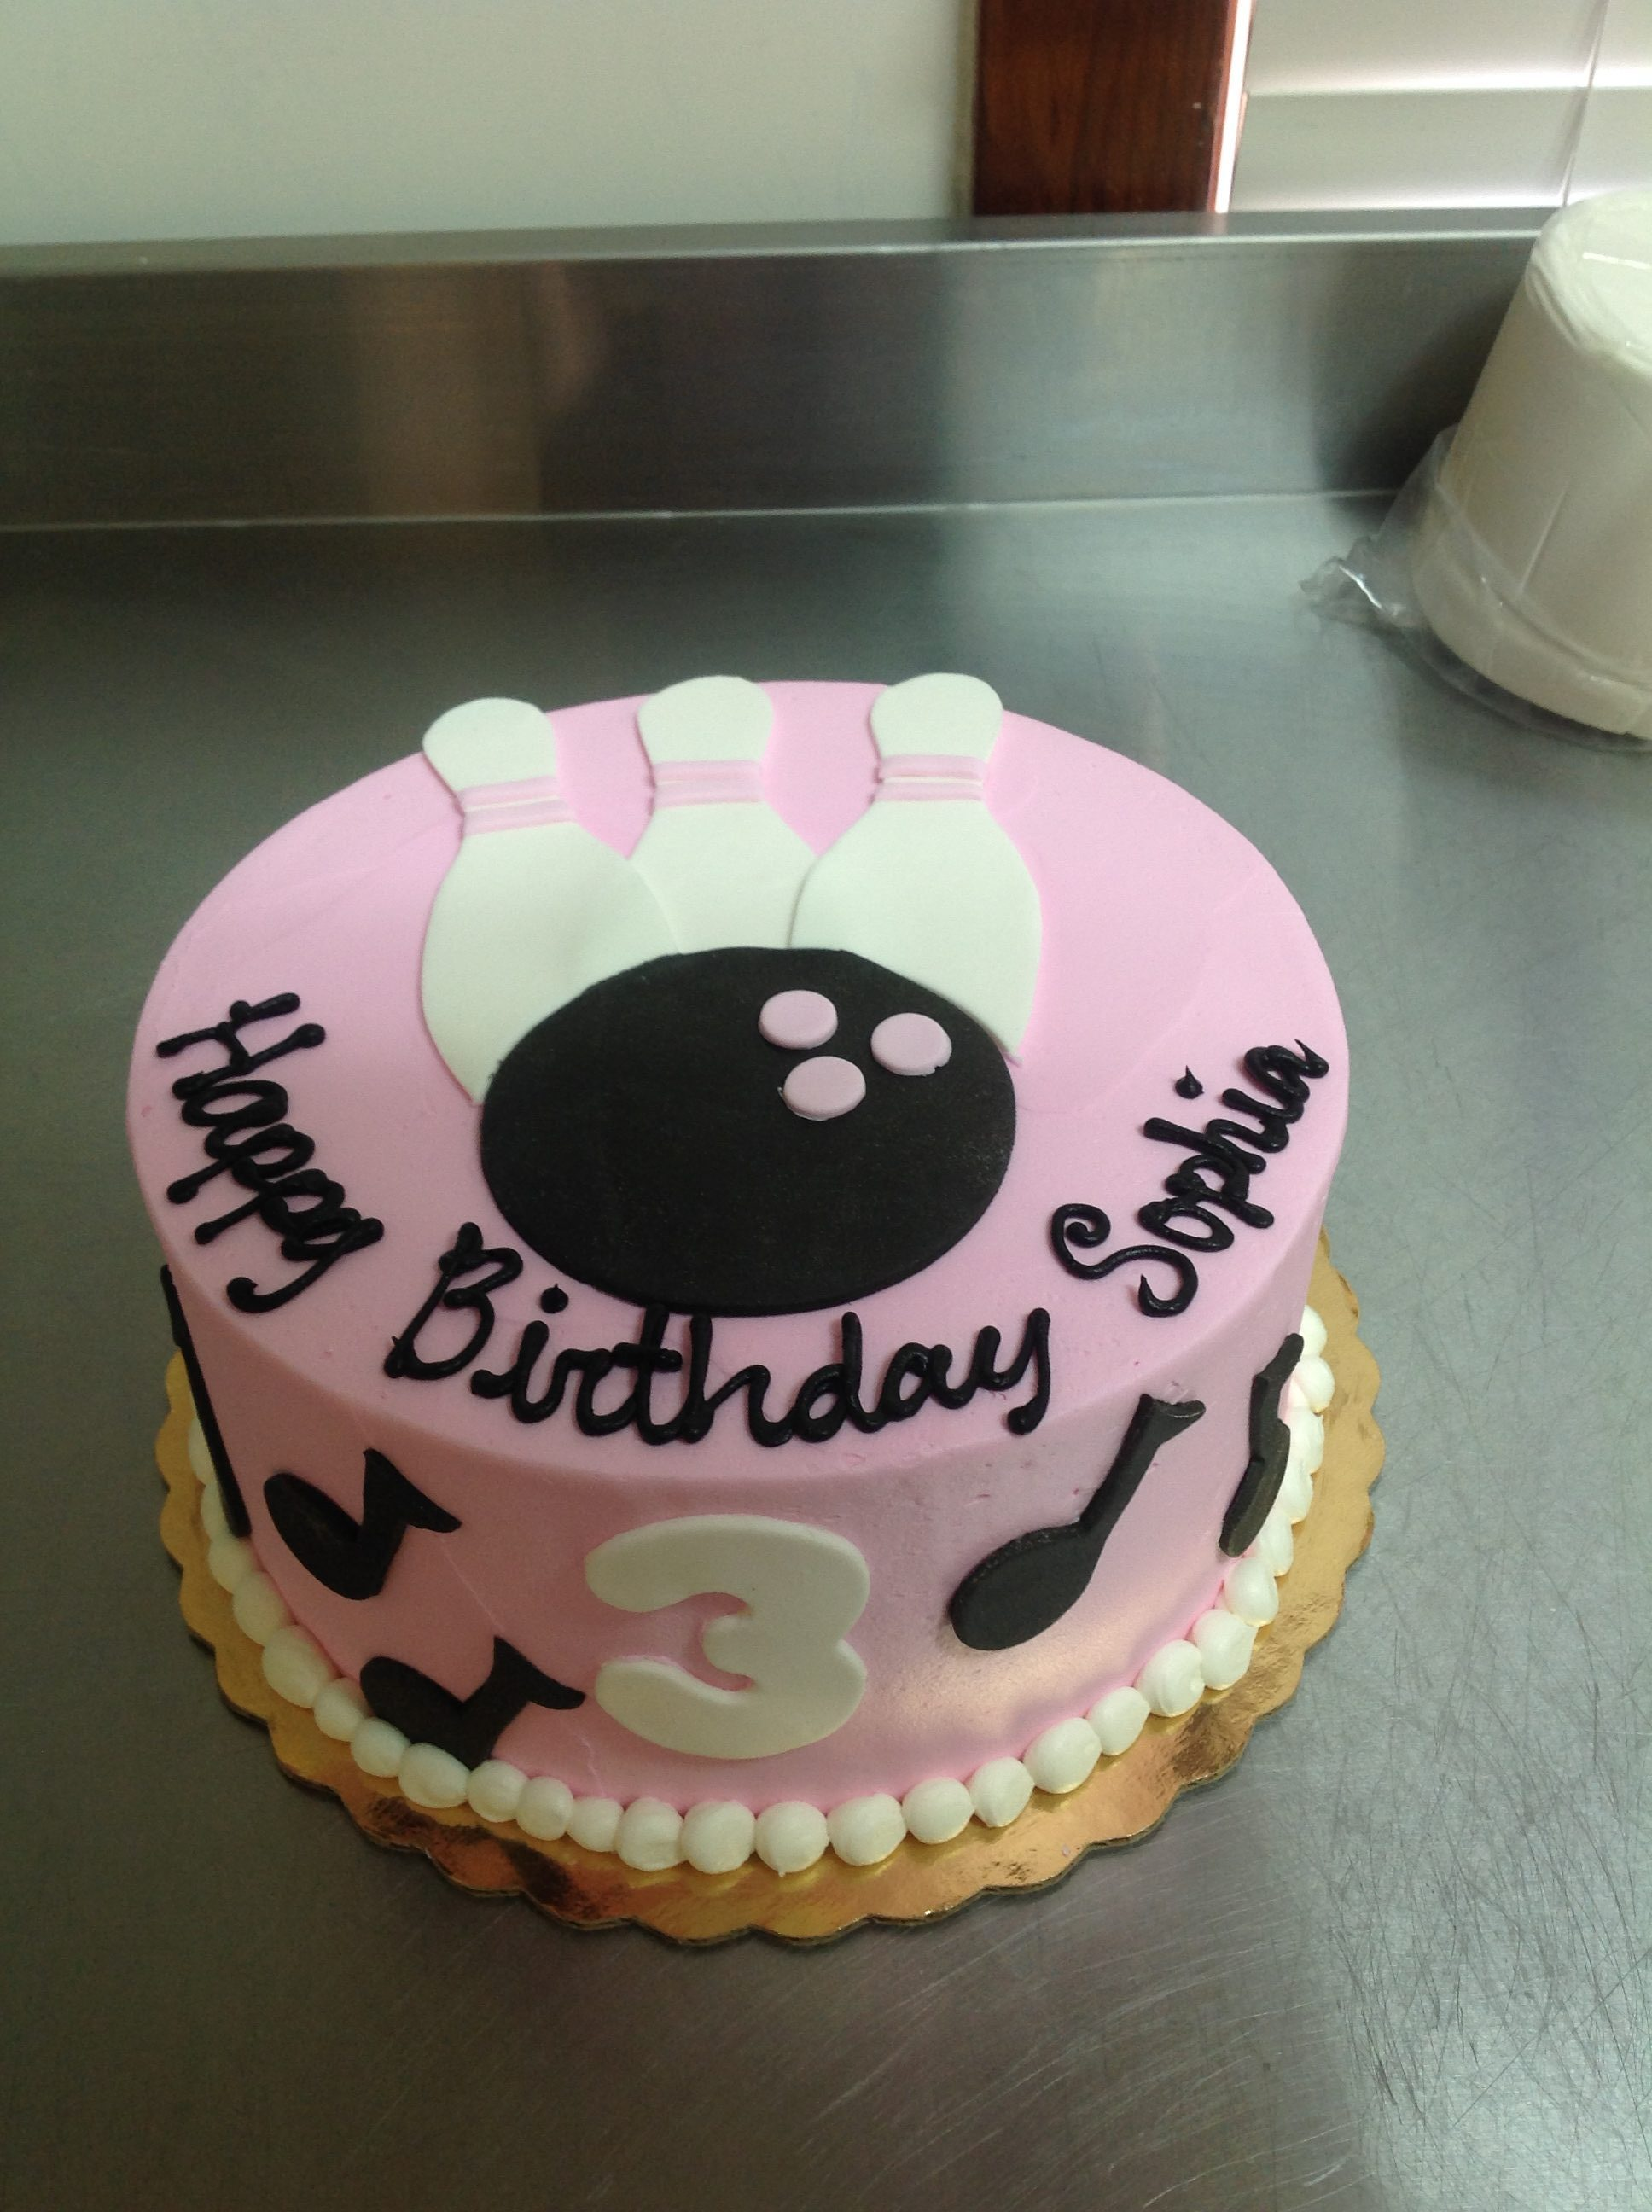 Birthday Cake Images For Email : Kids Birthday Cakes   The Cocoa Bean Bakery